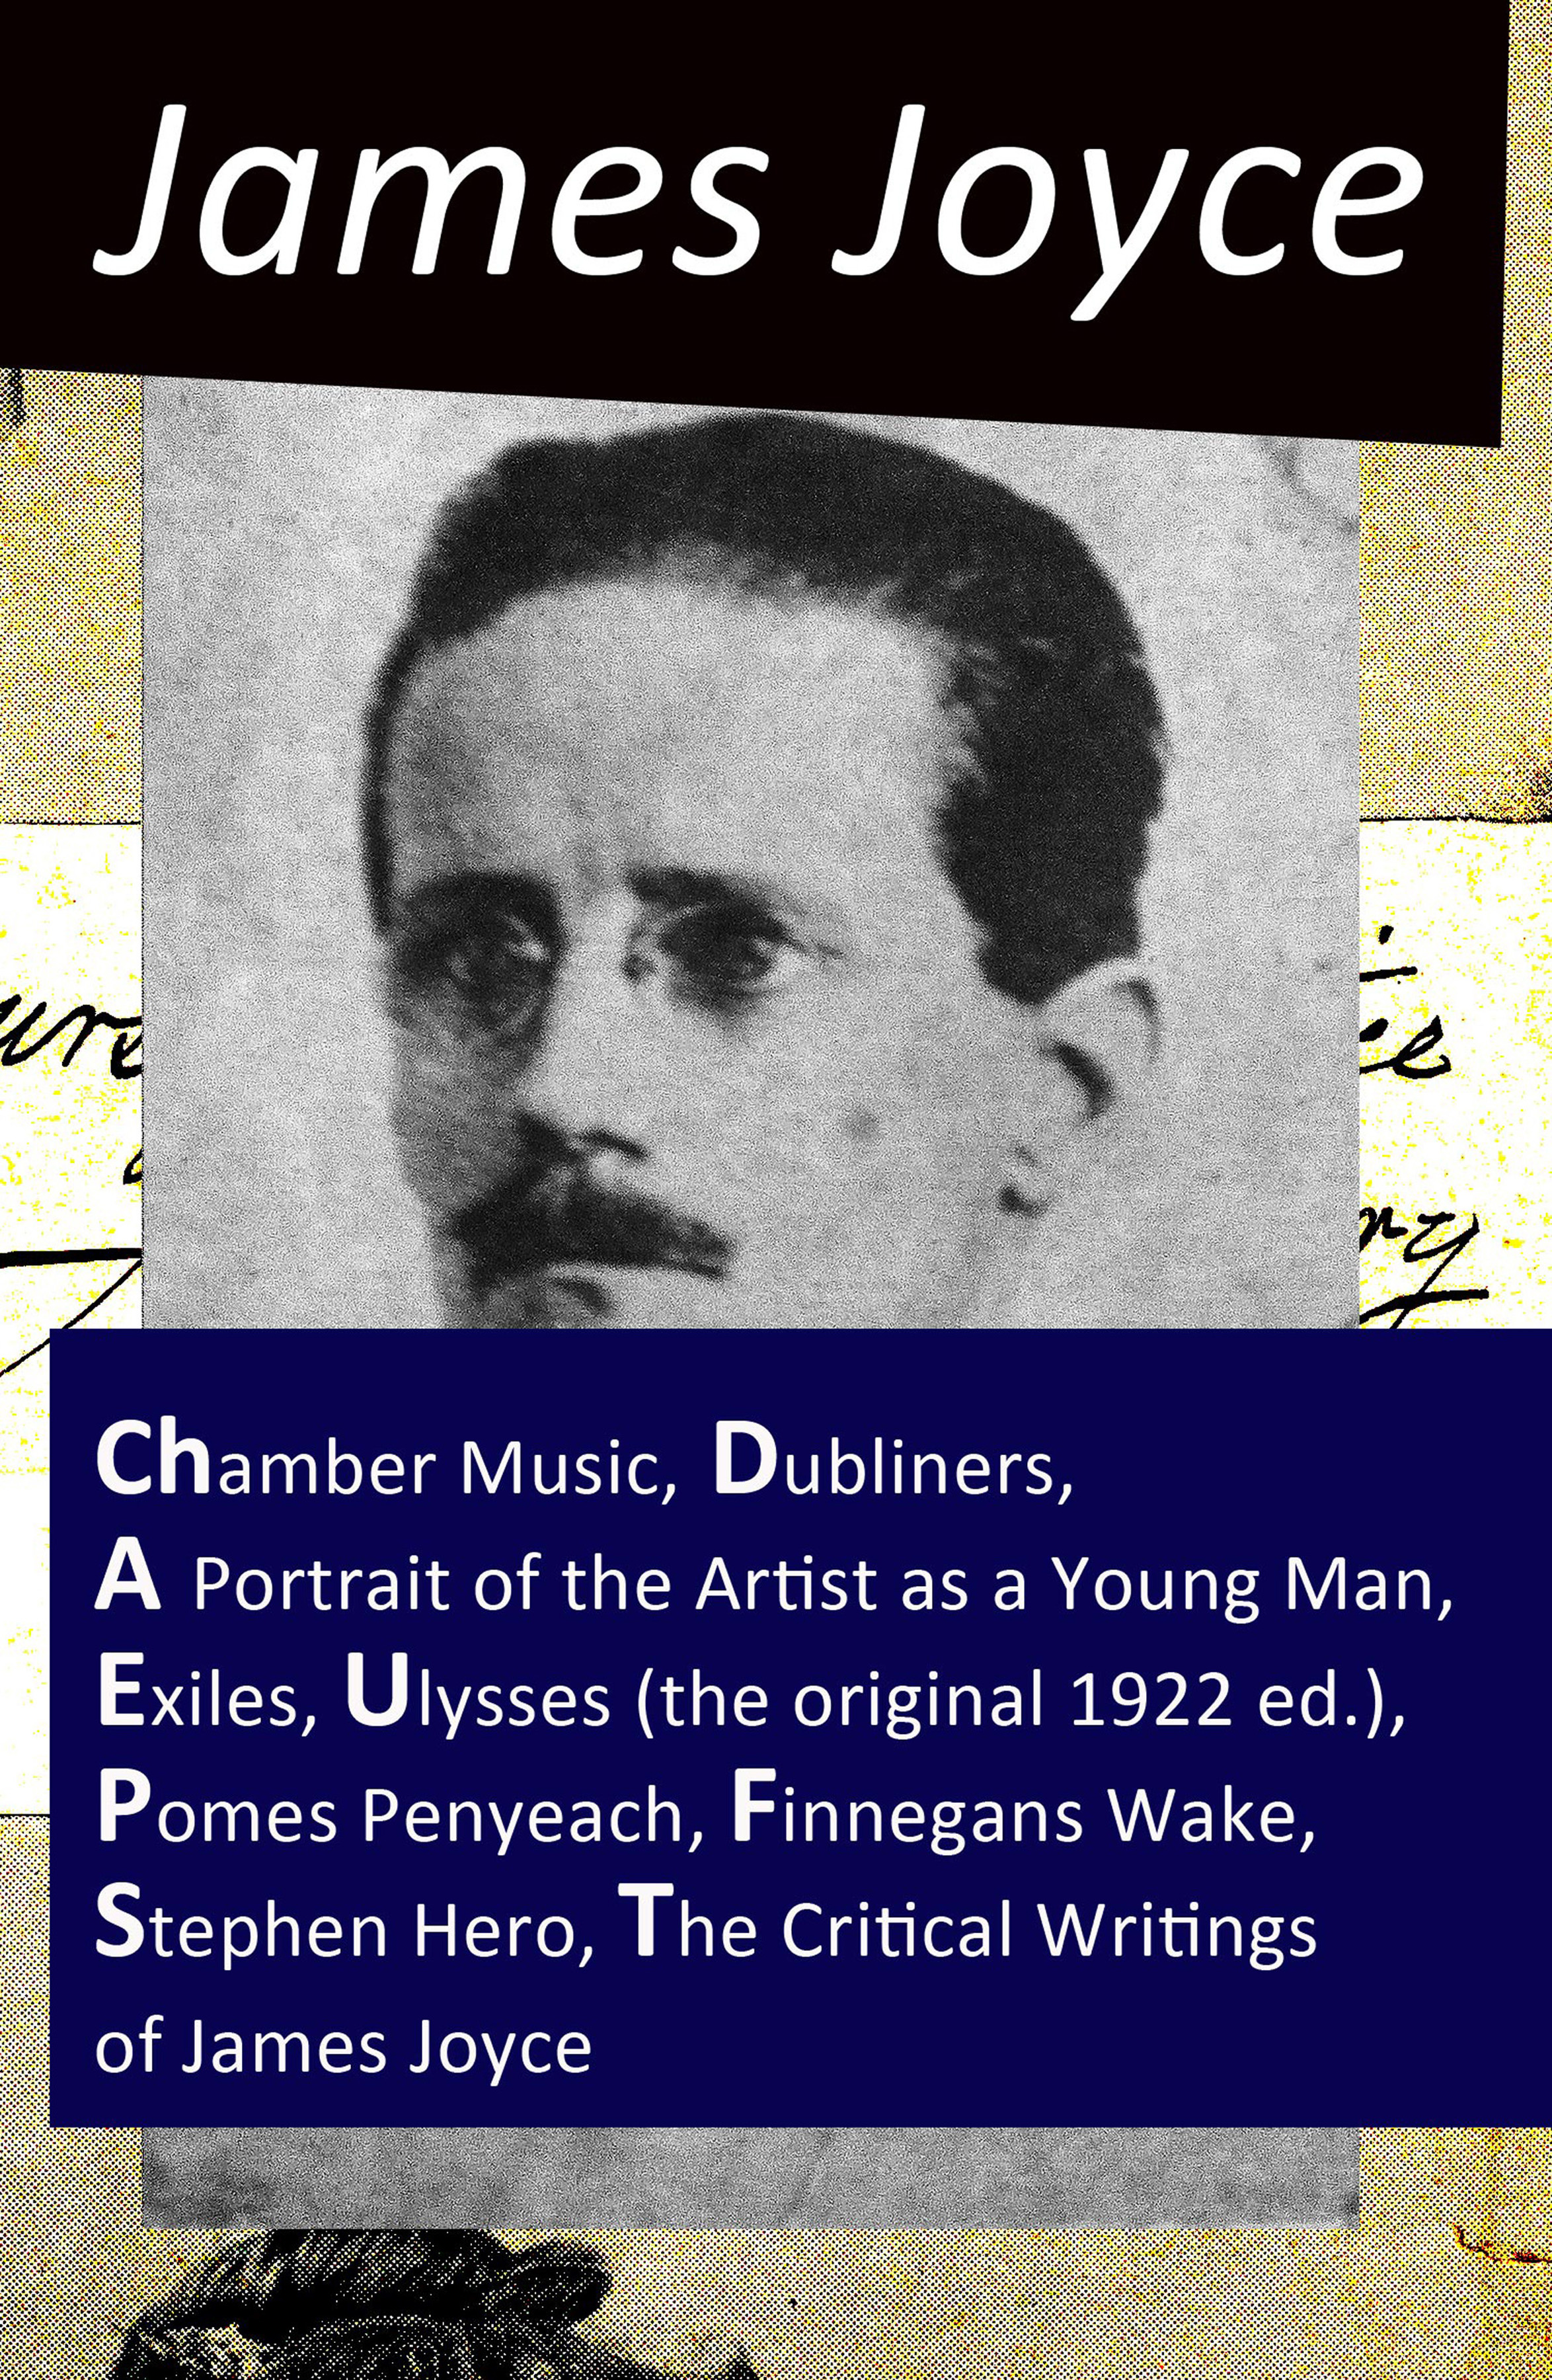 James Joyce The Collected Works of James Joyce: Chamber Music + Dubliners + A Portrait of the Artist as a Young Man + Exiles + Ulysses (the original 1922 ed.) + Pomes Penyeach + Finnegans Wake + Stephen Hero + The Critical Writings of James Joyce james joyce a portrait of the artist as a young man